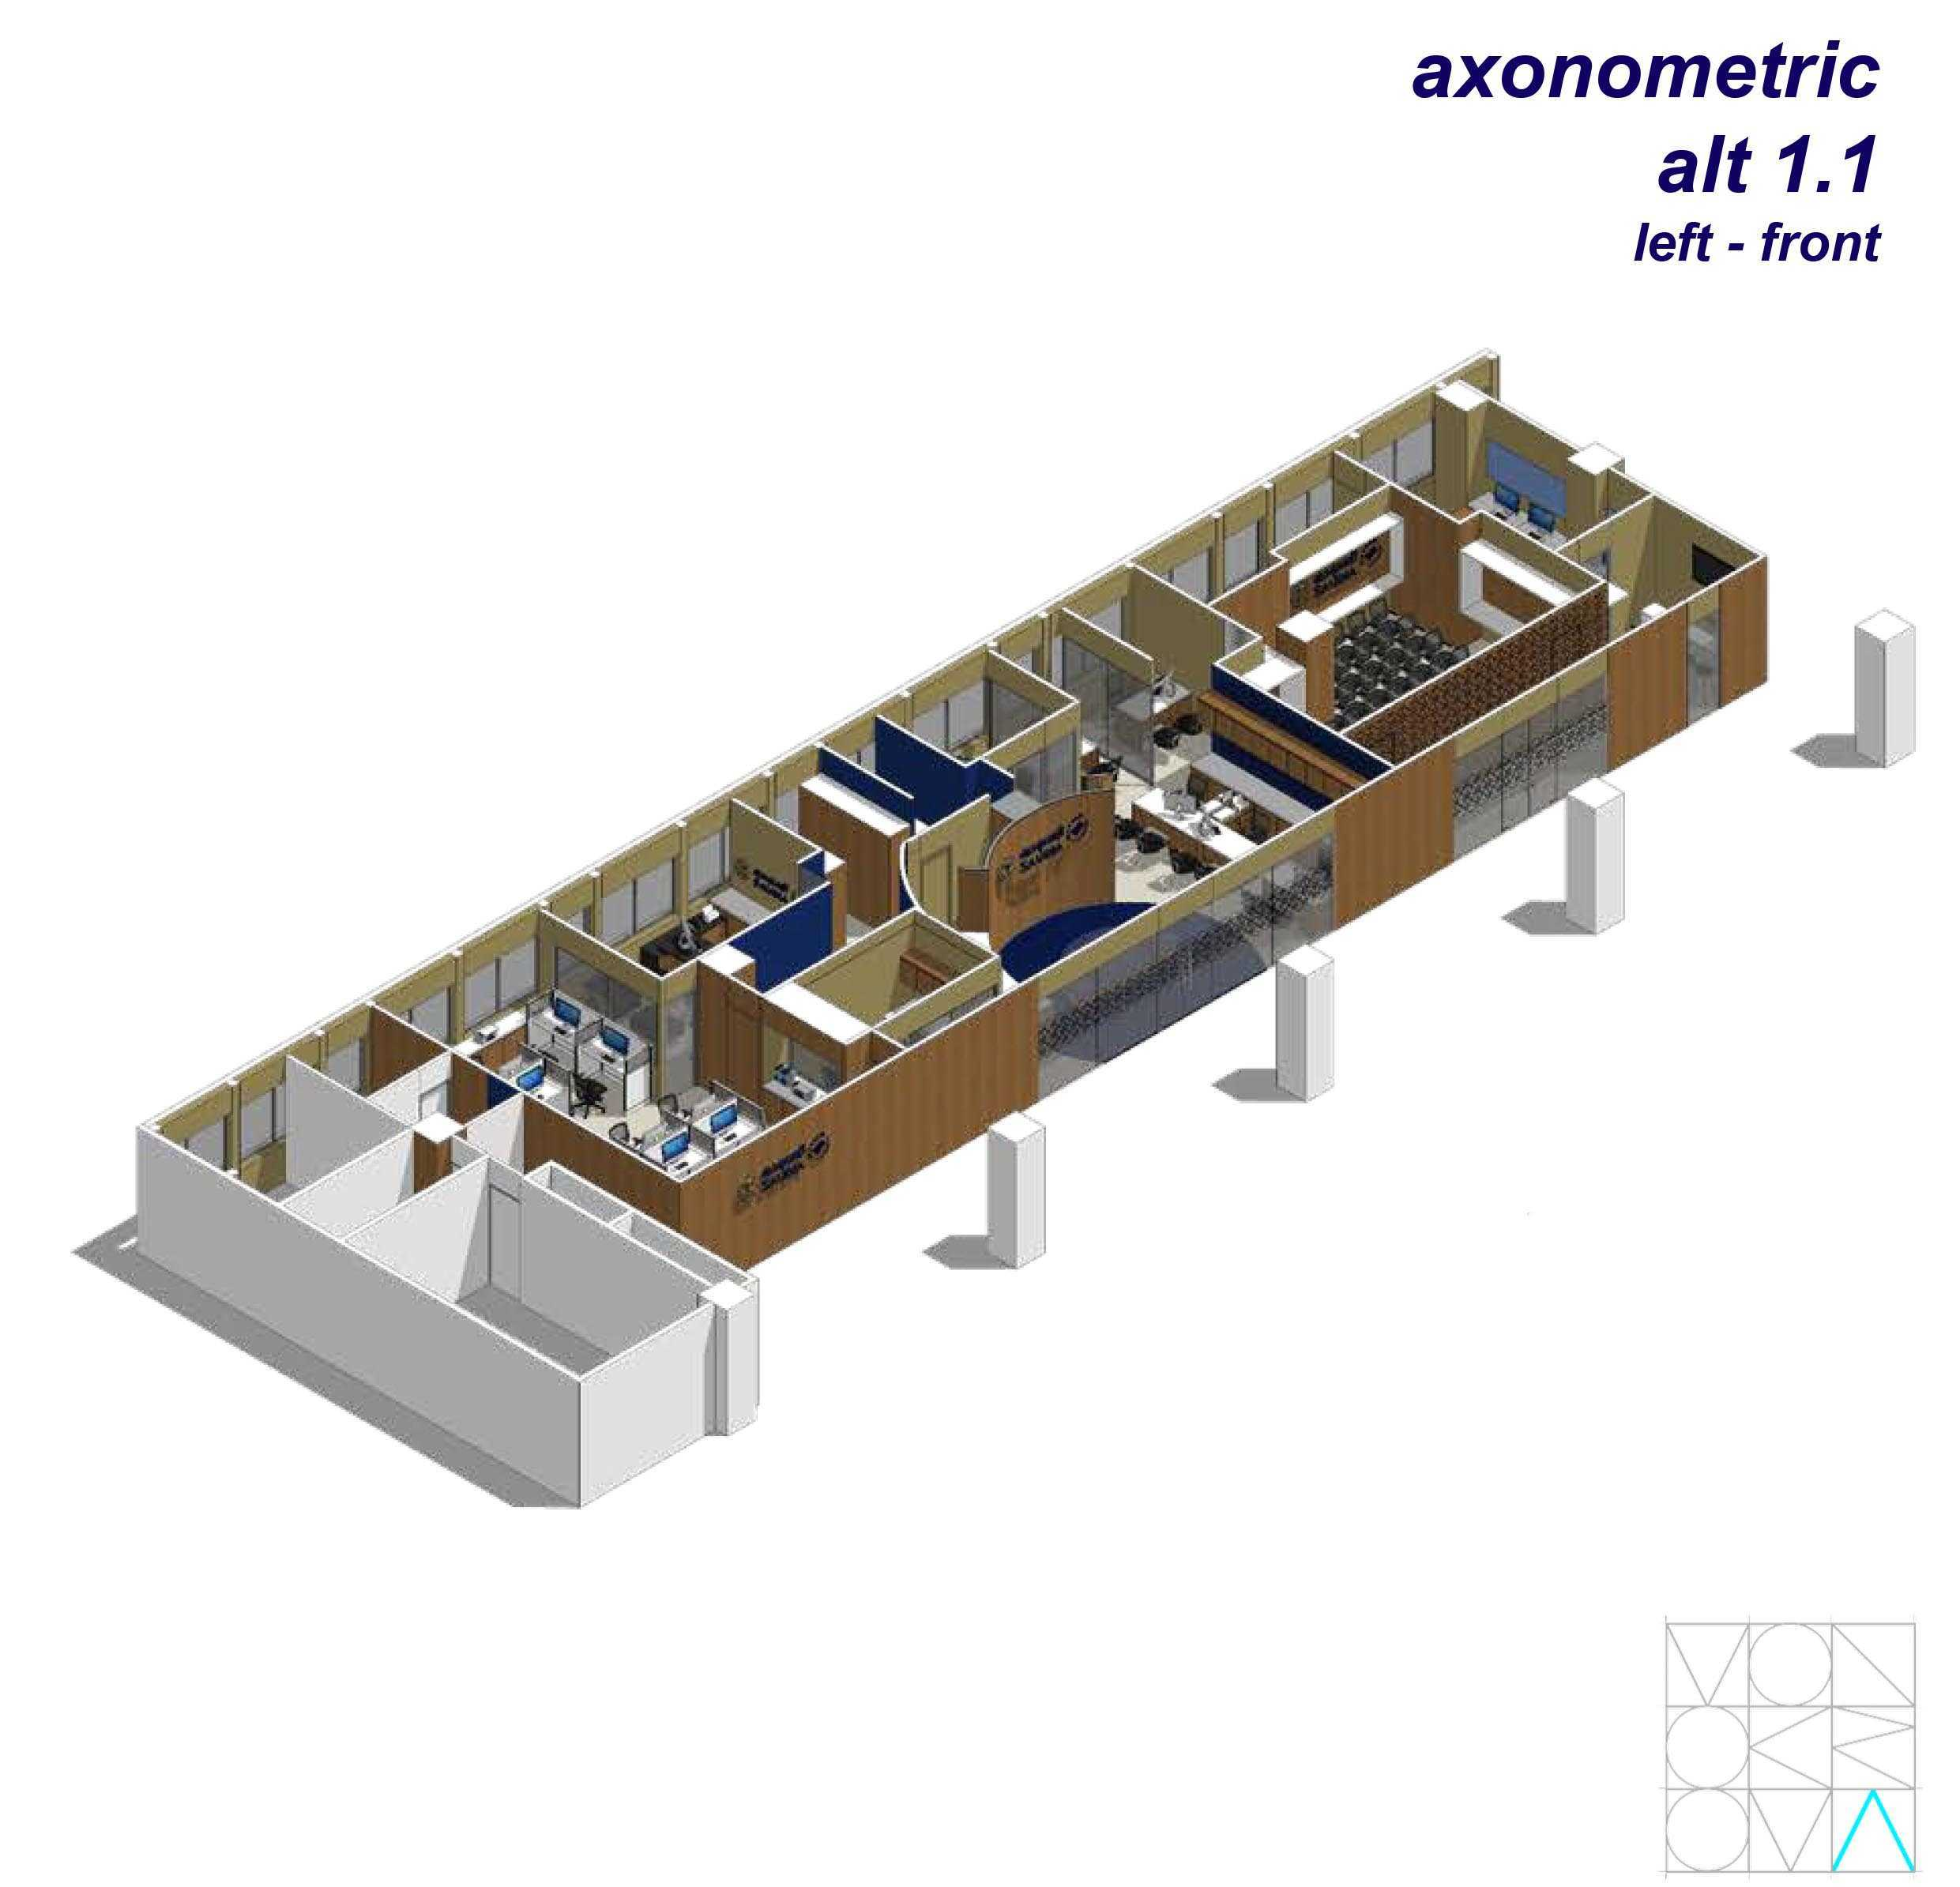 Monokroma Architect Saudi Arabian Airlines Office Soekarno Hatta Airport Terminal 3 Soekarno Hatta Airport Terminal 3 Axonometric-Alternative-1-1-Left-Front Modern  14730